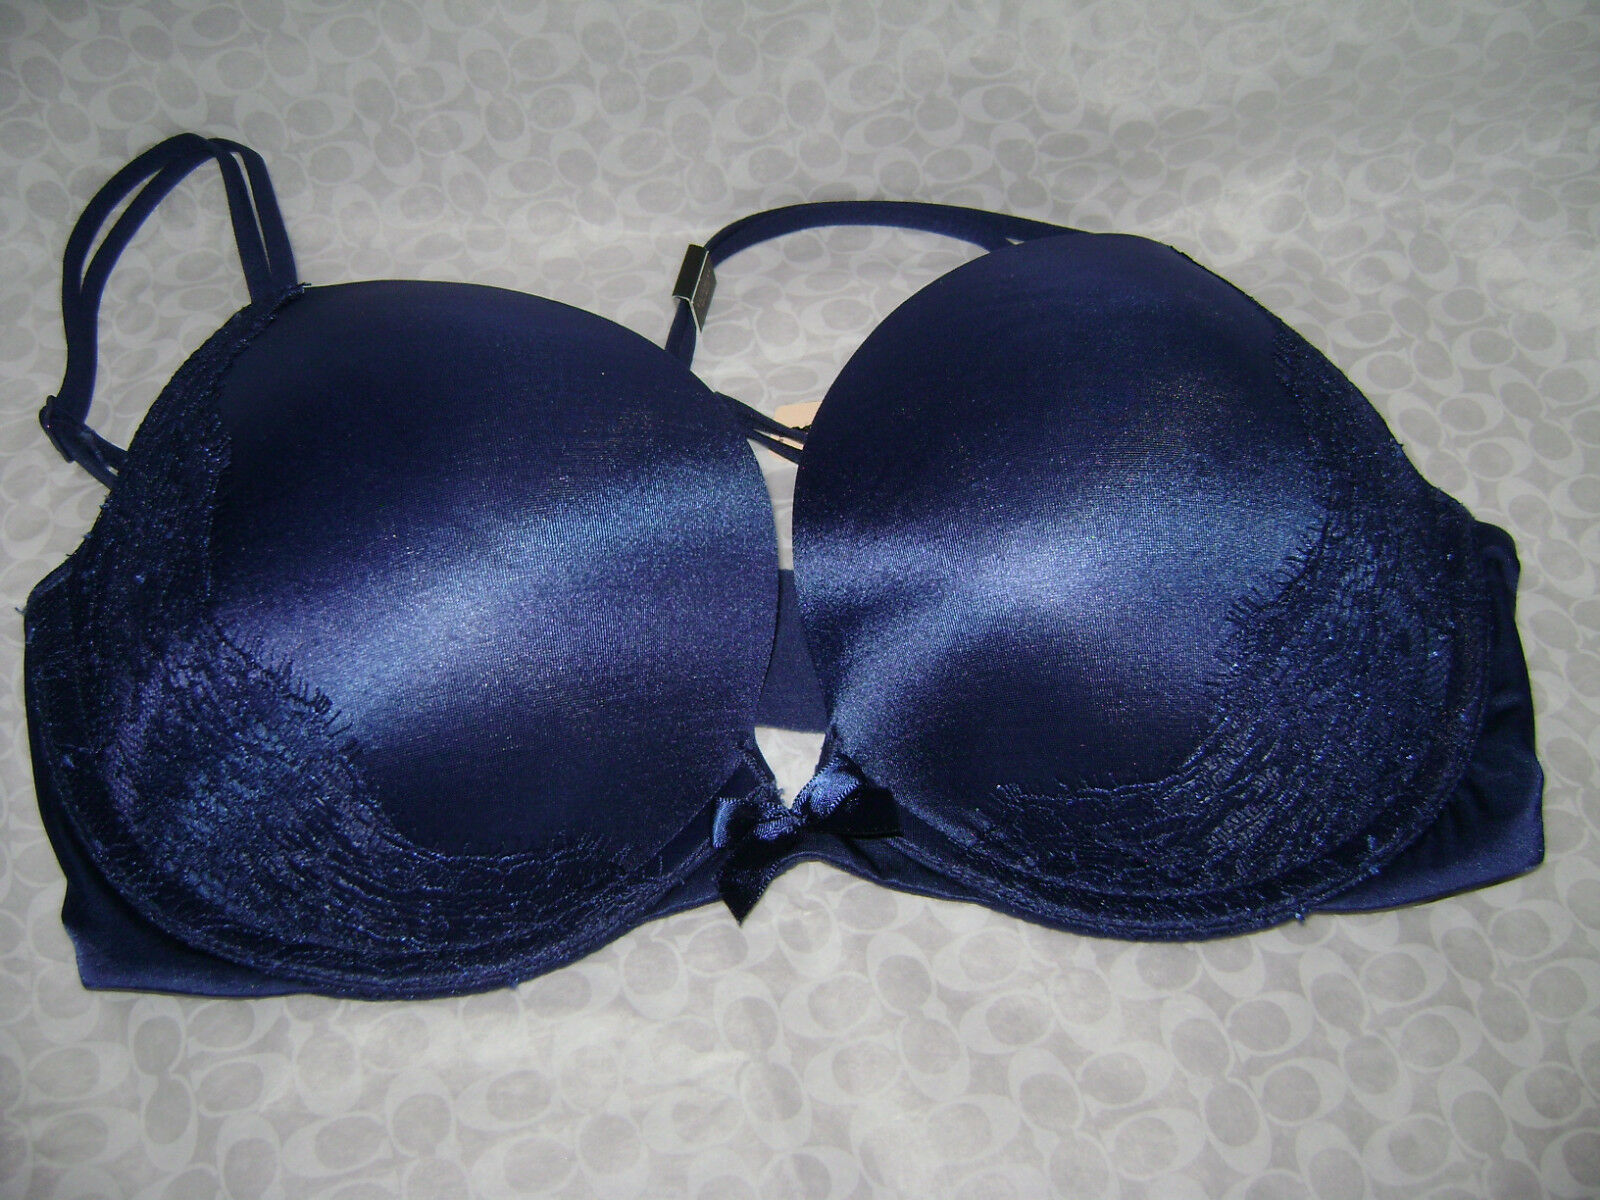 NWT VICTORIA'S SECRET VERY SEXY PUSH UP BRA 32DD ROYAL blueE SOLD OUT